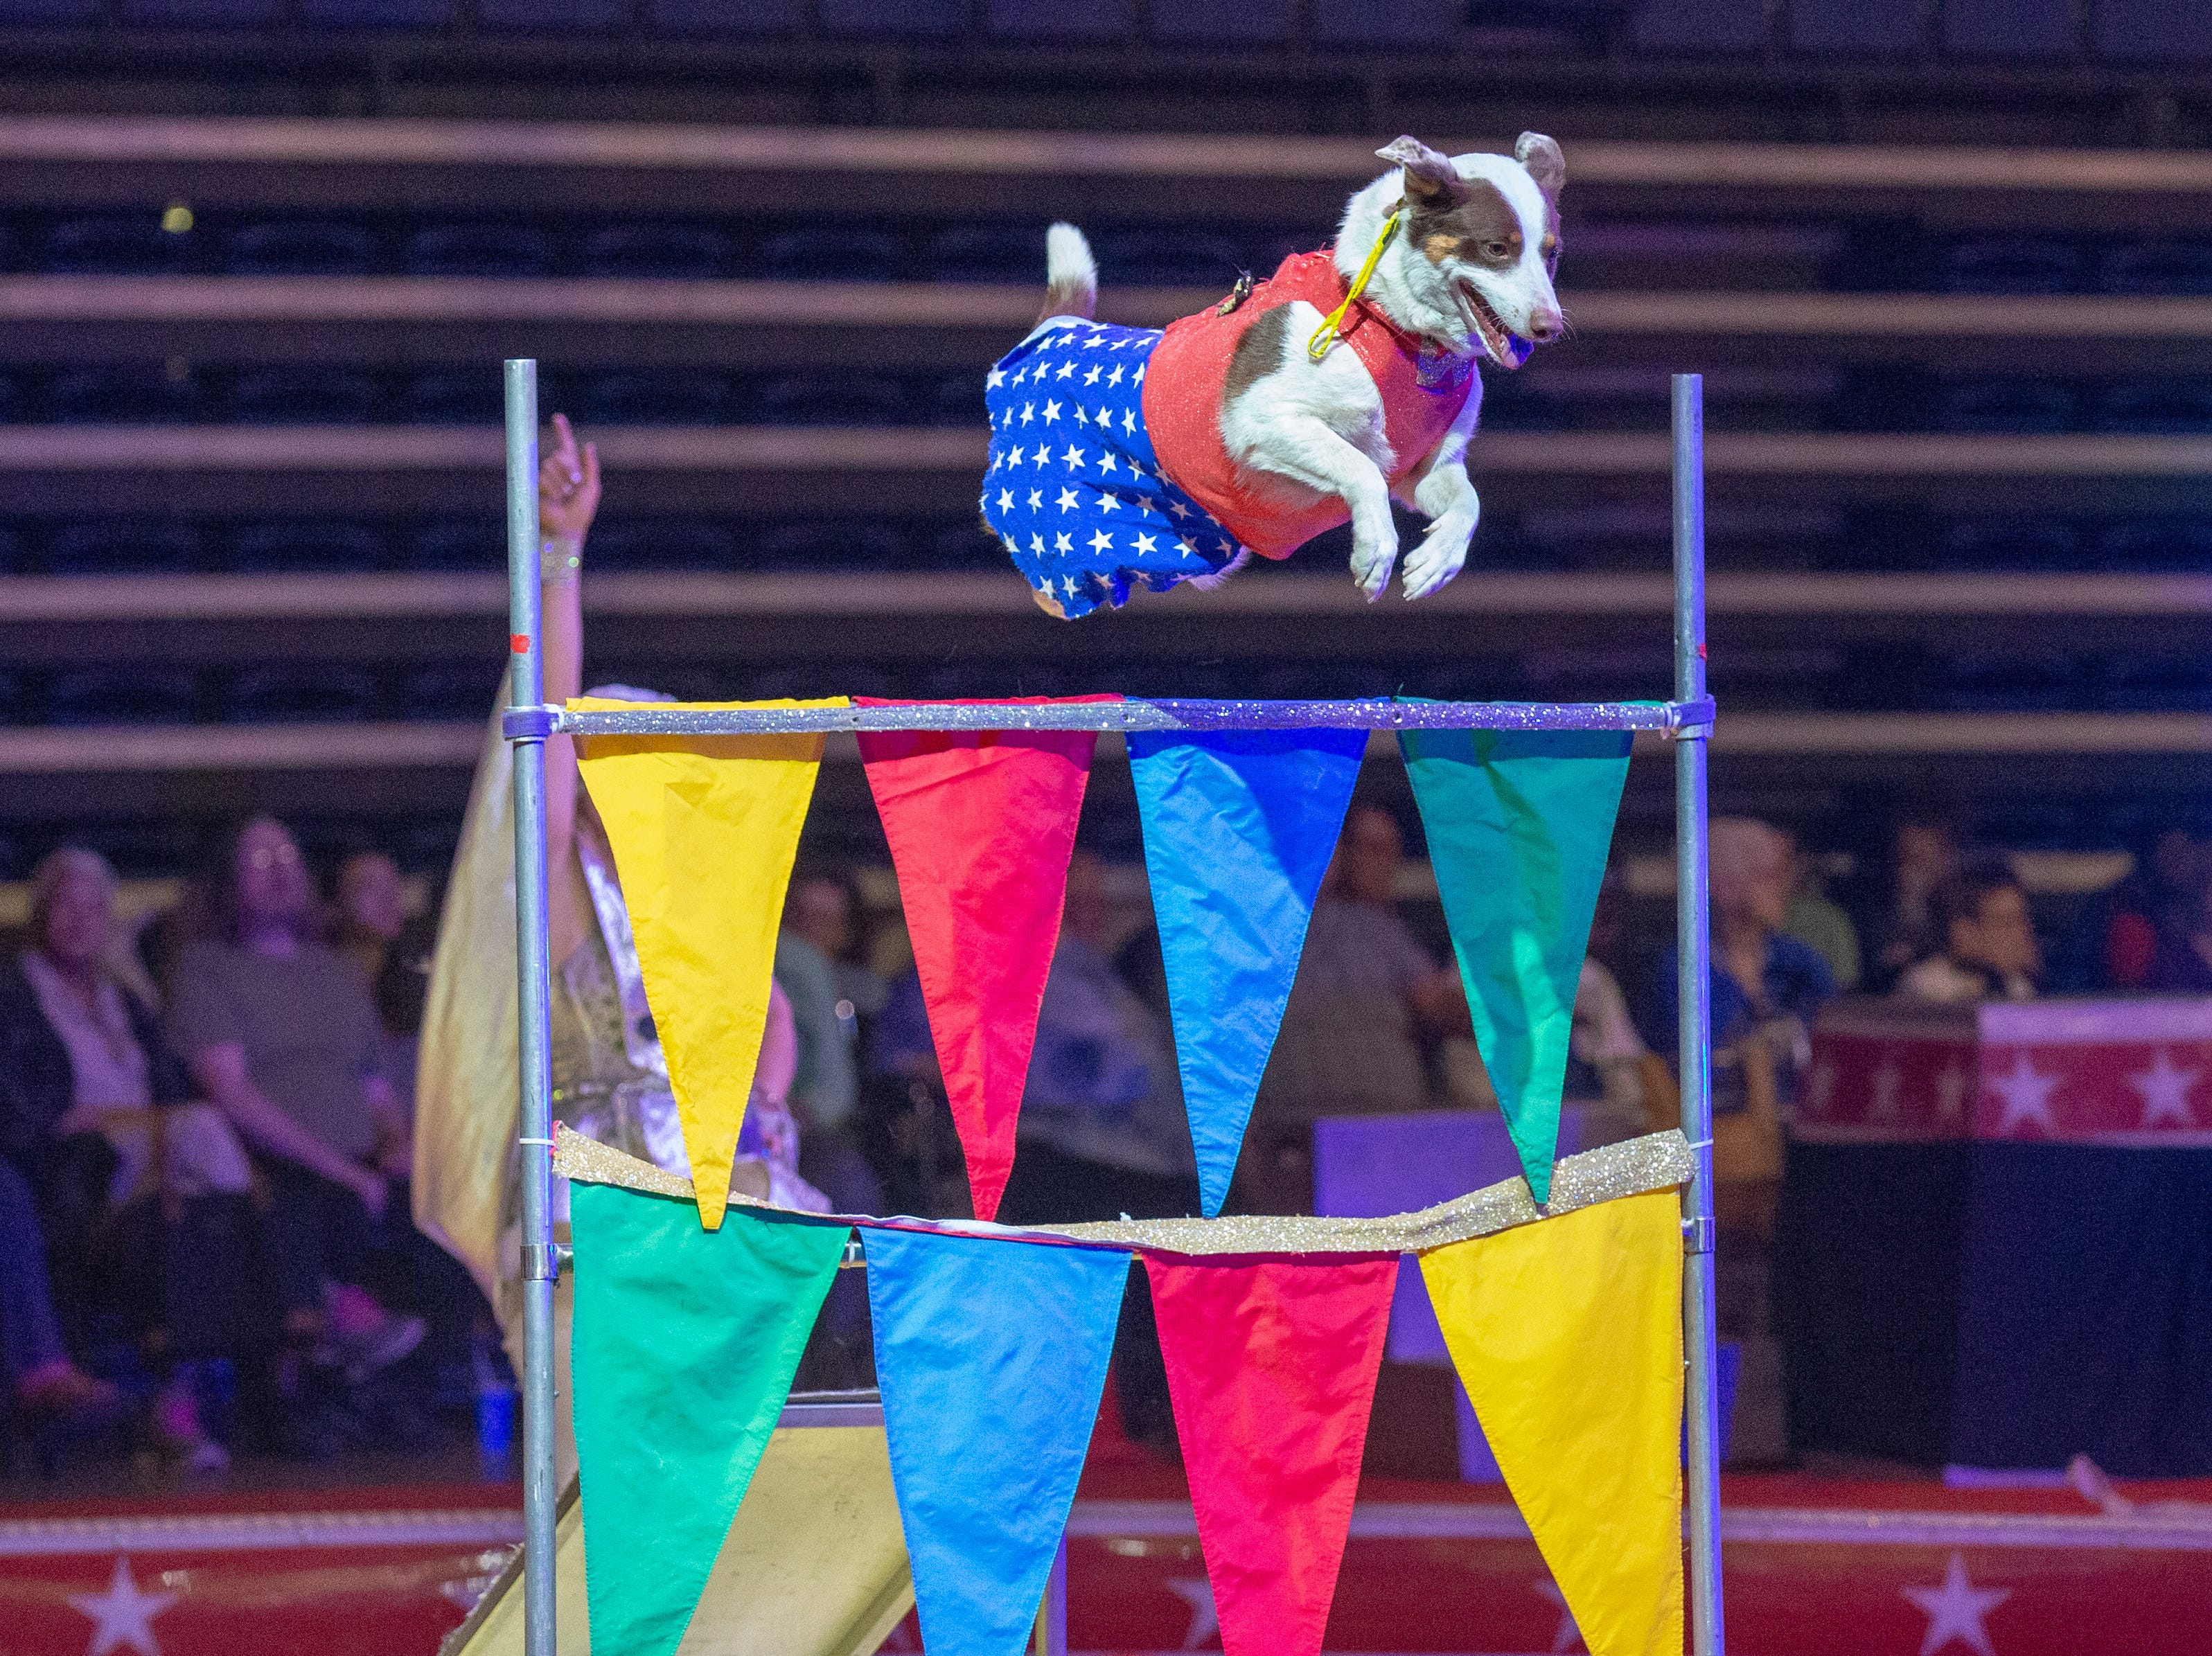 Members of the 2019 El Riad Shrine Circus perform at the Sioux Falls Arena during Thursday's show.  Shows run Thursday through Sunday; you can find more informationon show times at elriadshrine.com.